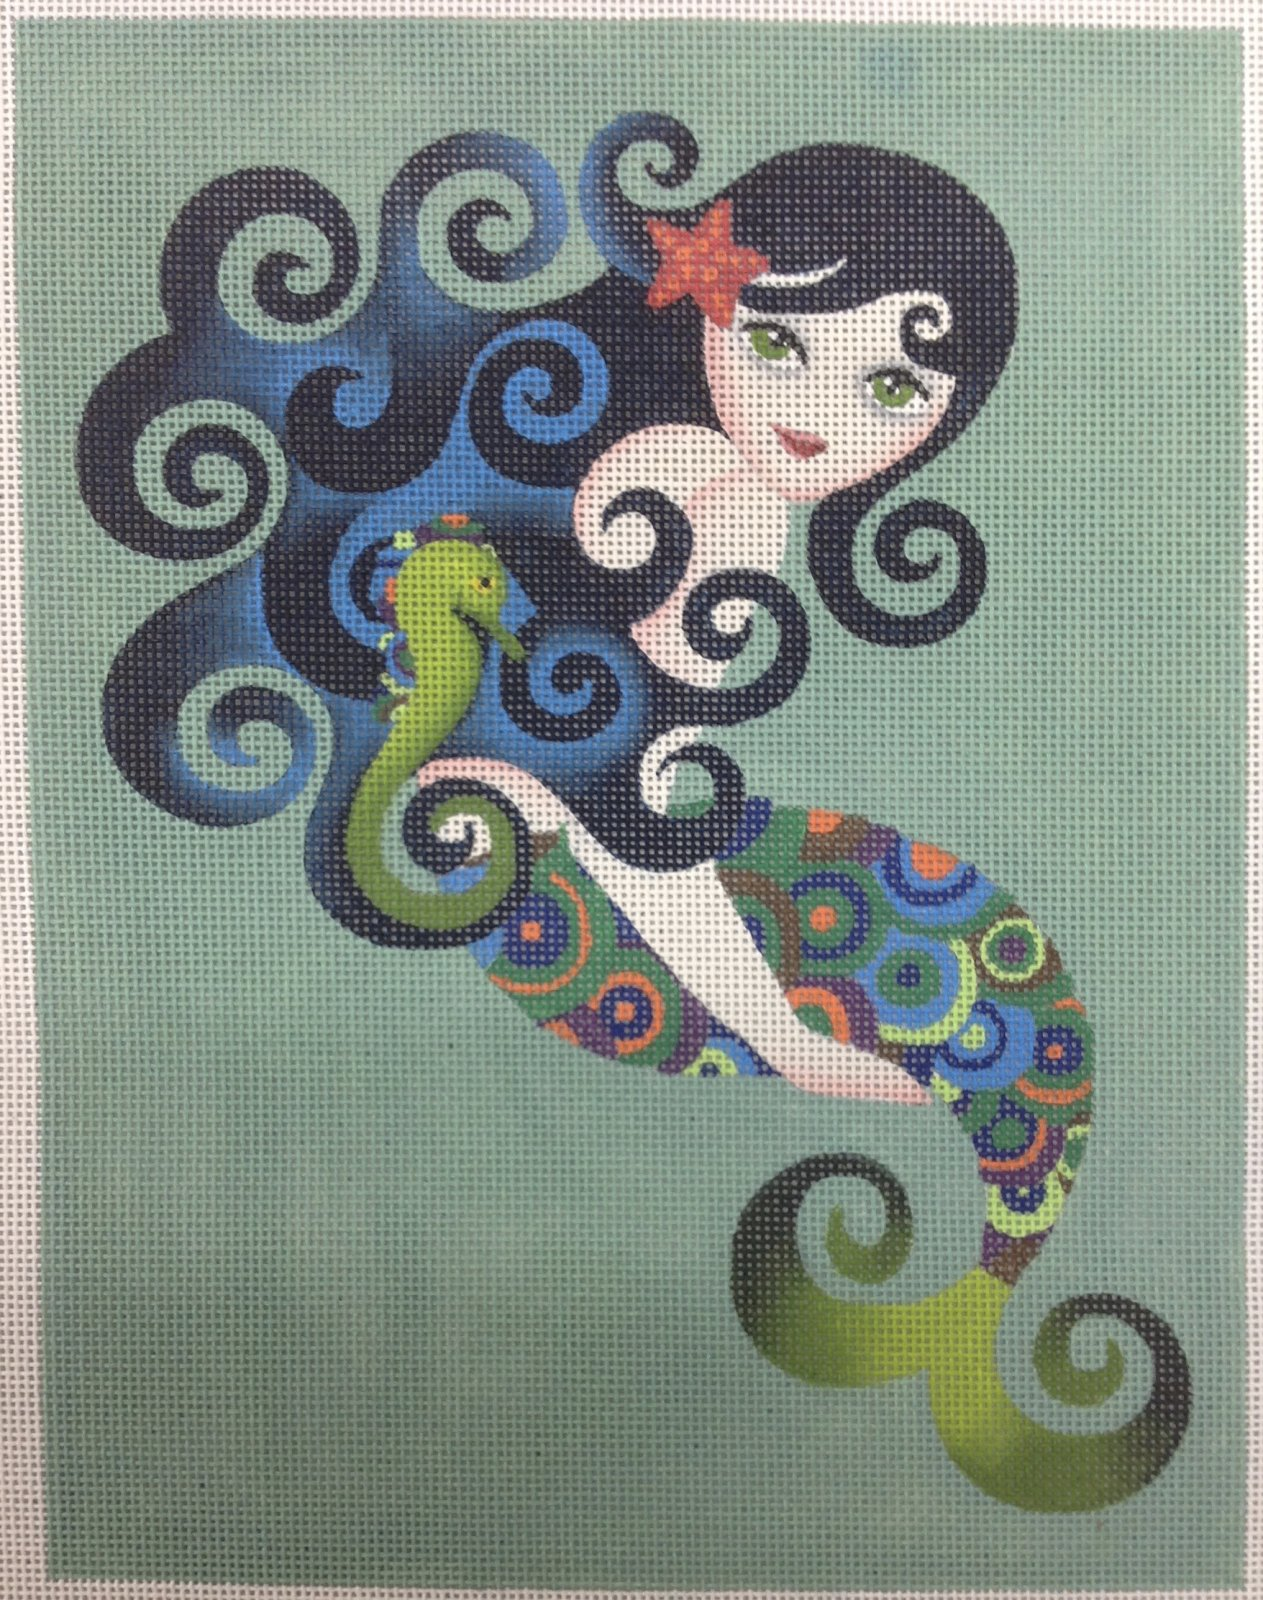 aquamarine mermaid w stitch guide